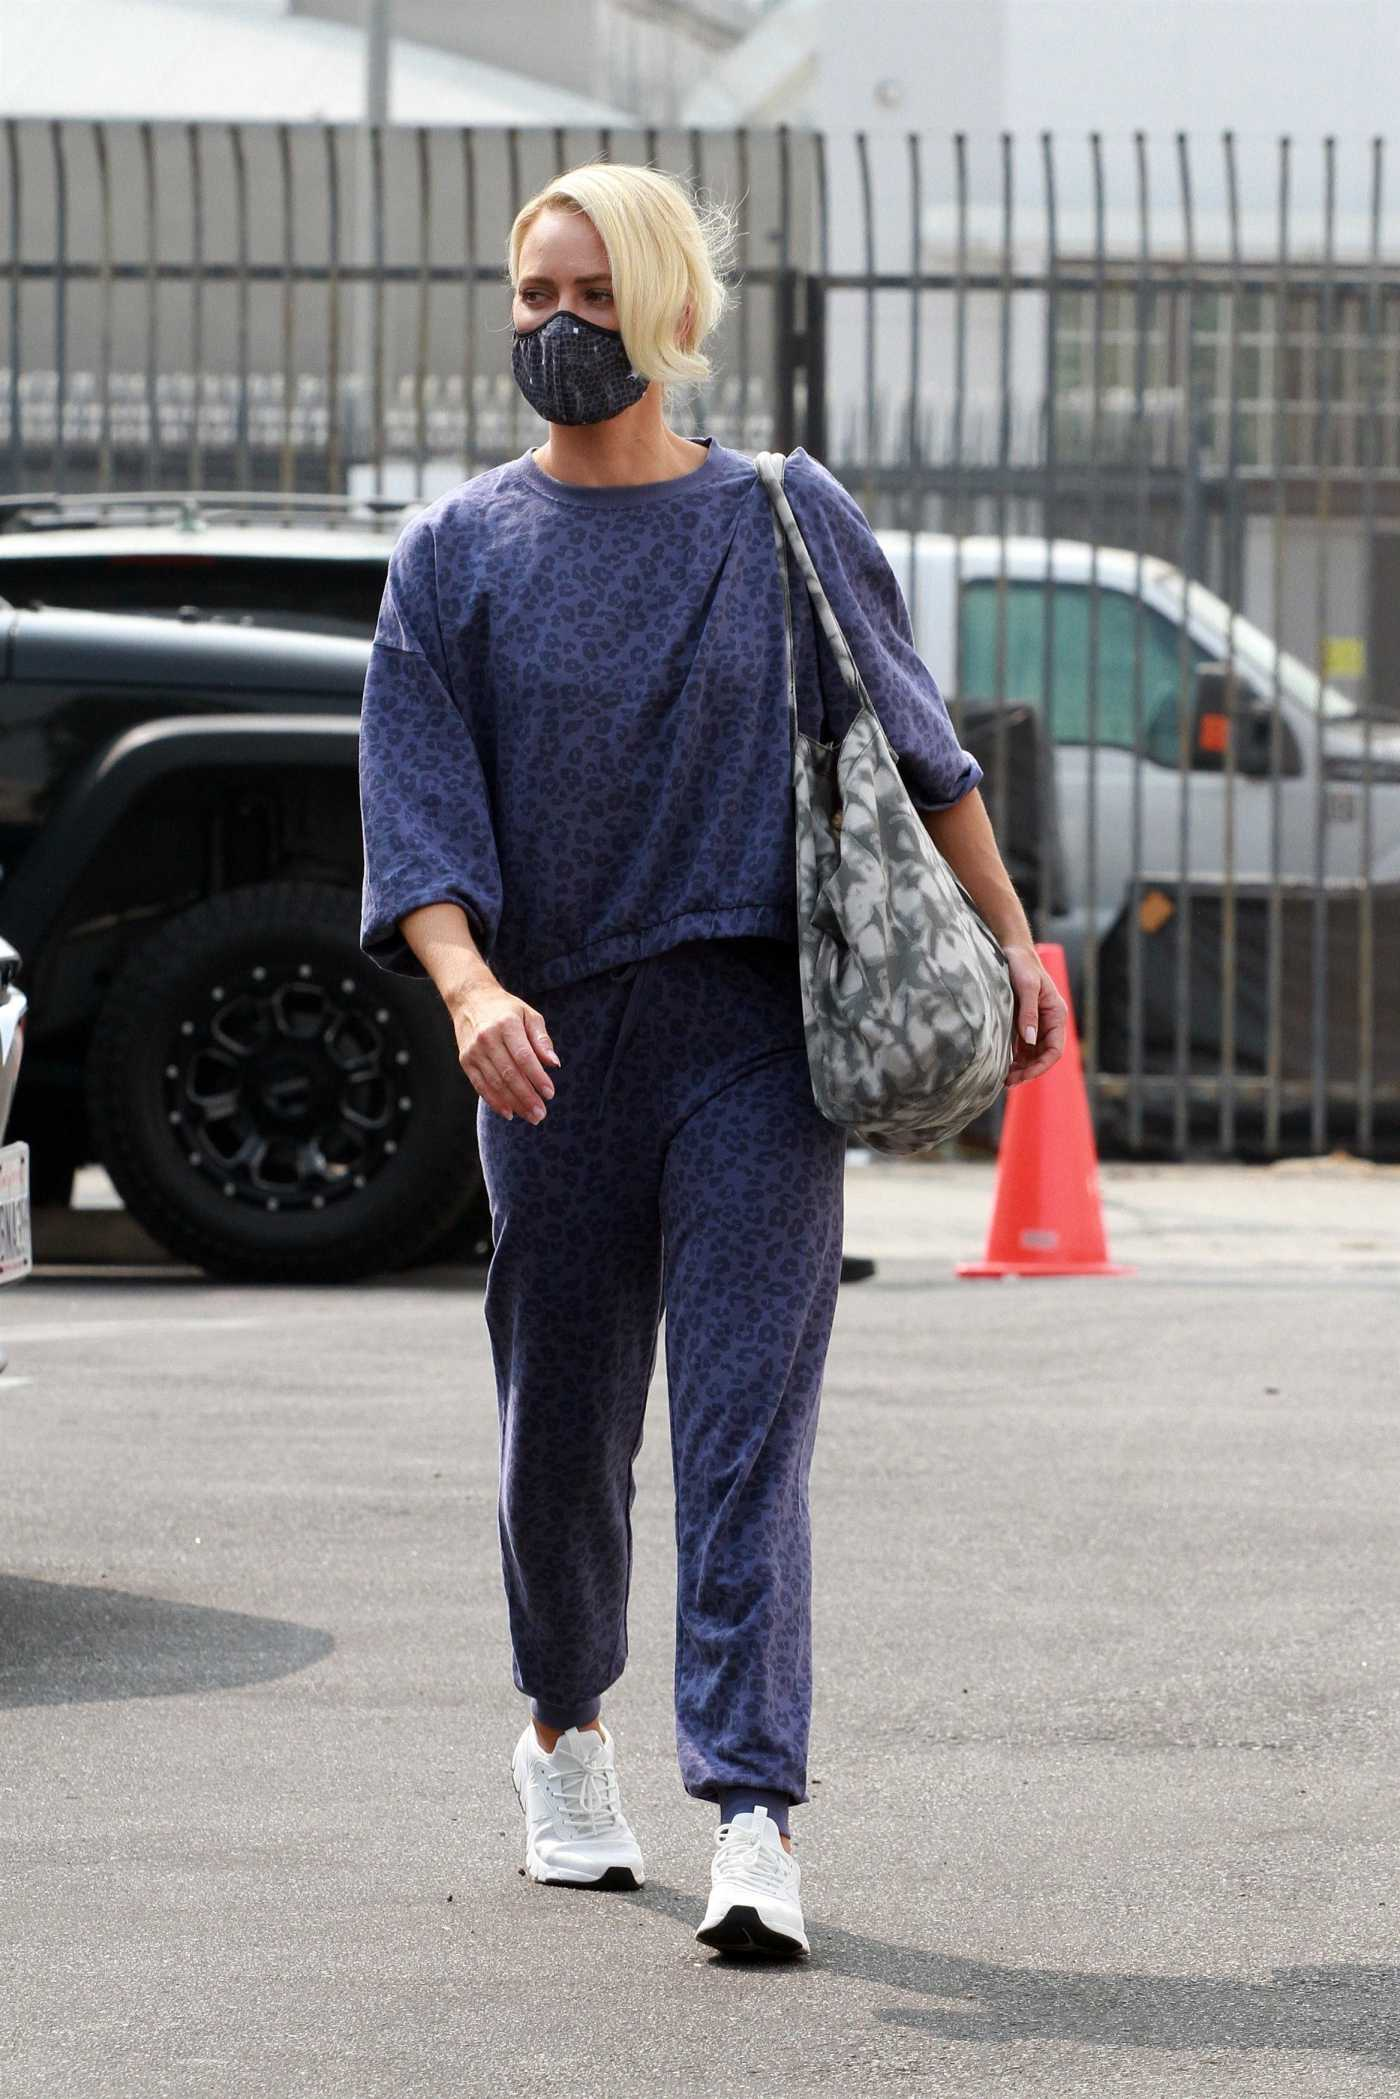 Peta Murgatroyd in a Blue Animal Print Sweatsuit Arrives at the DWTS Studio in Los Angeles 09/15/2020